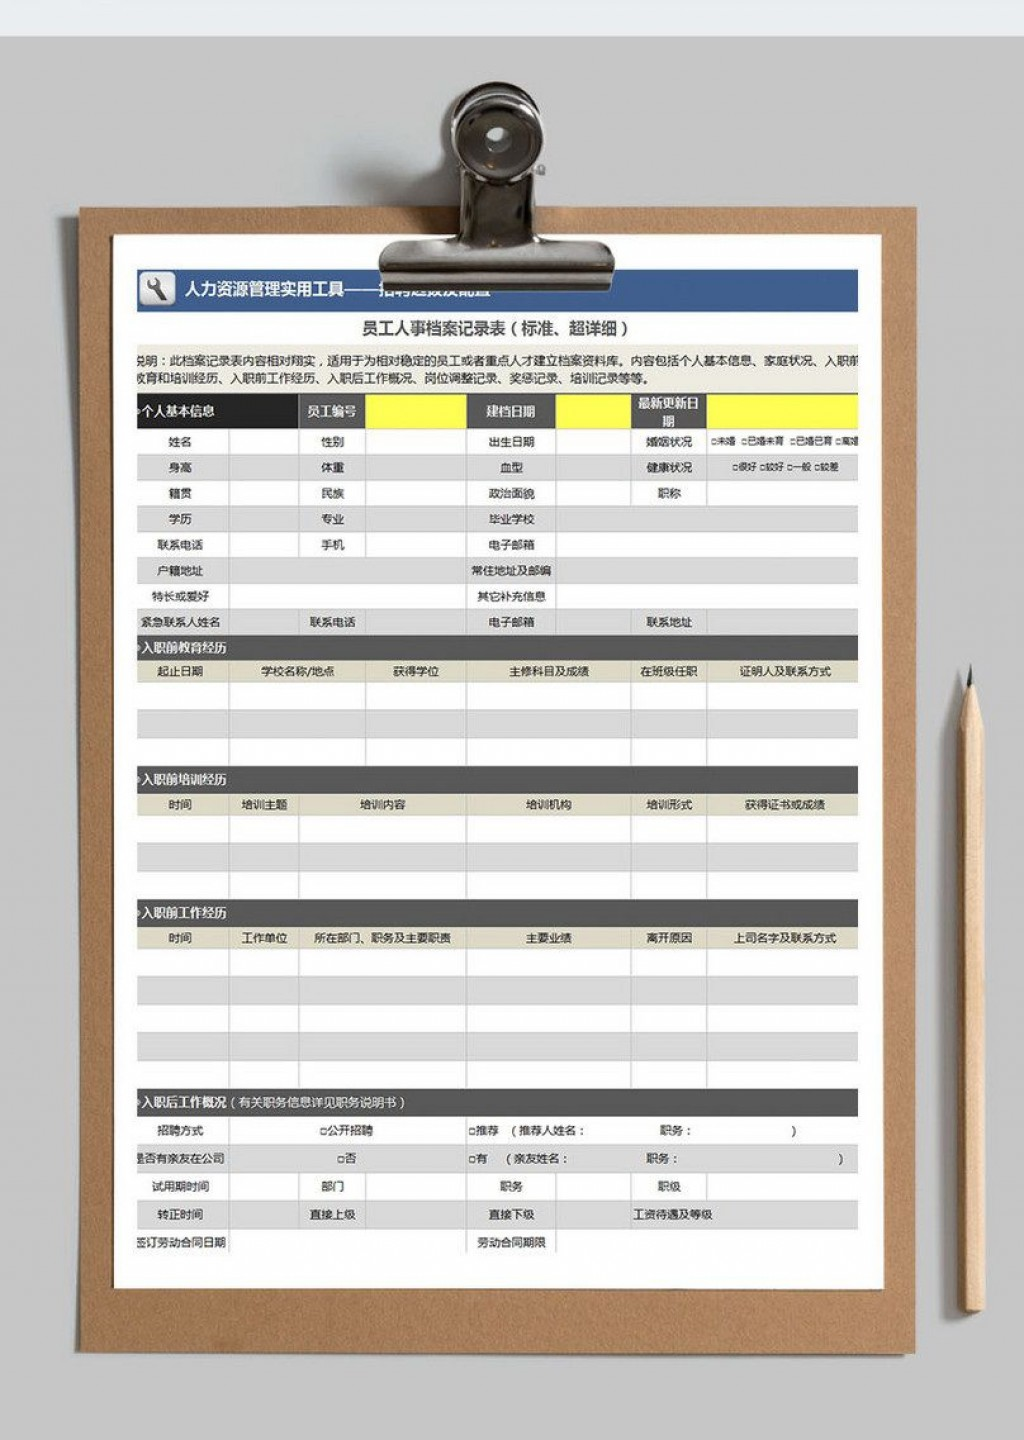 002 Unforgettable Employee Personnel File Template Picture  Uk Excel FormLarge